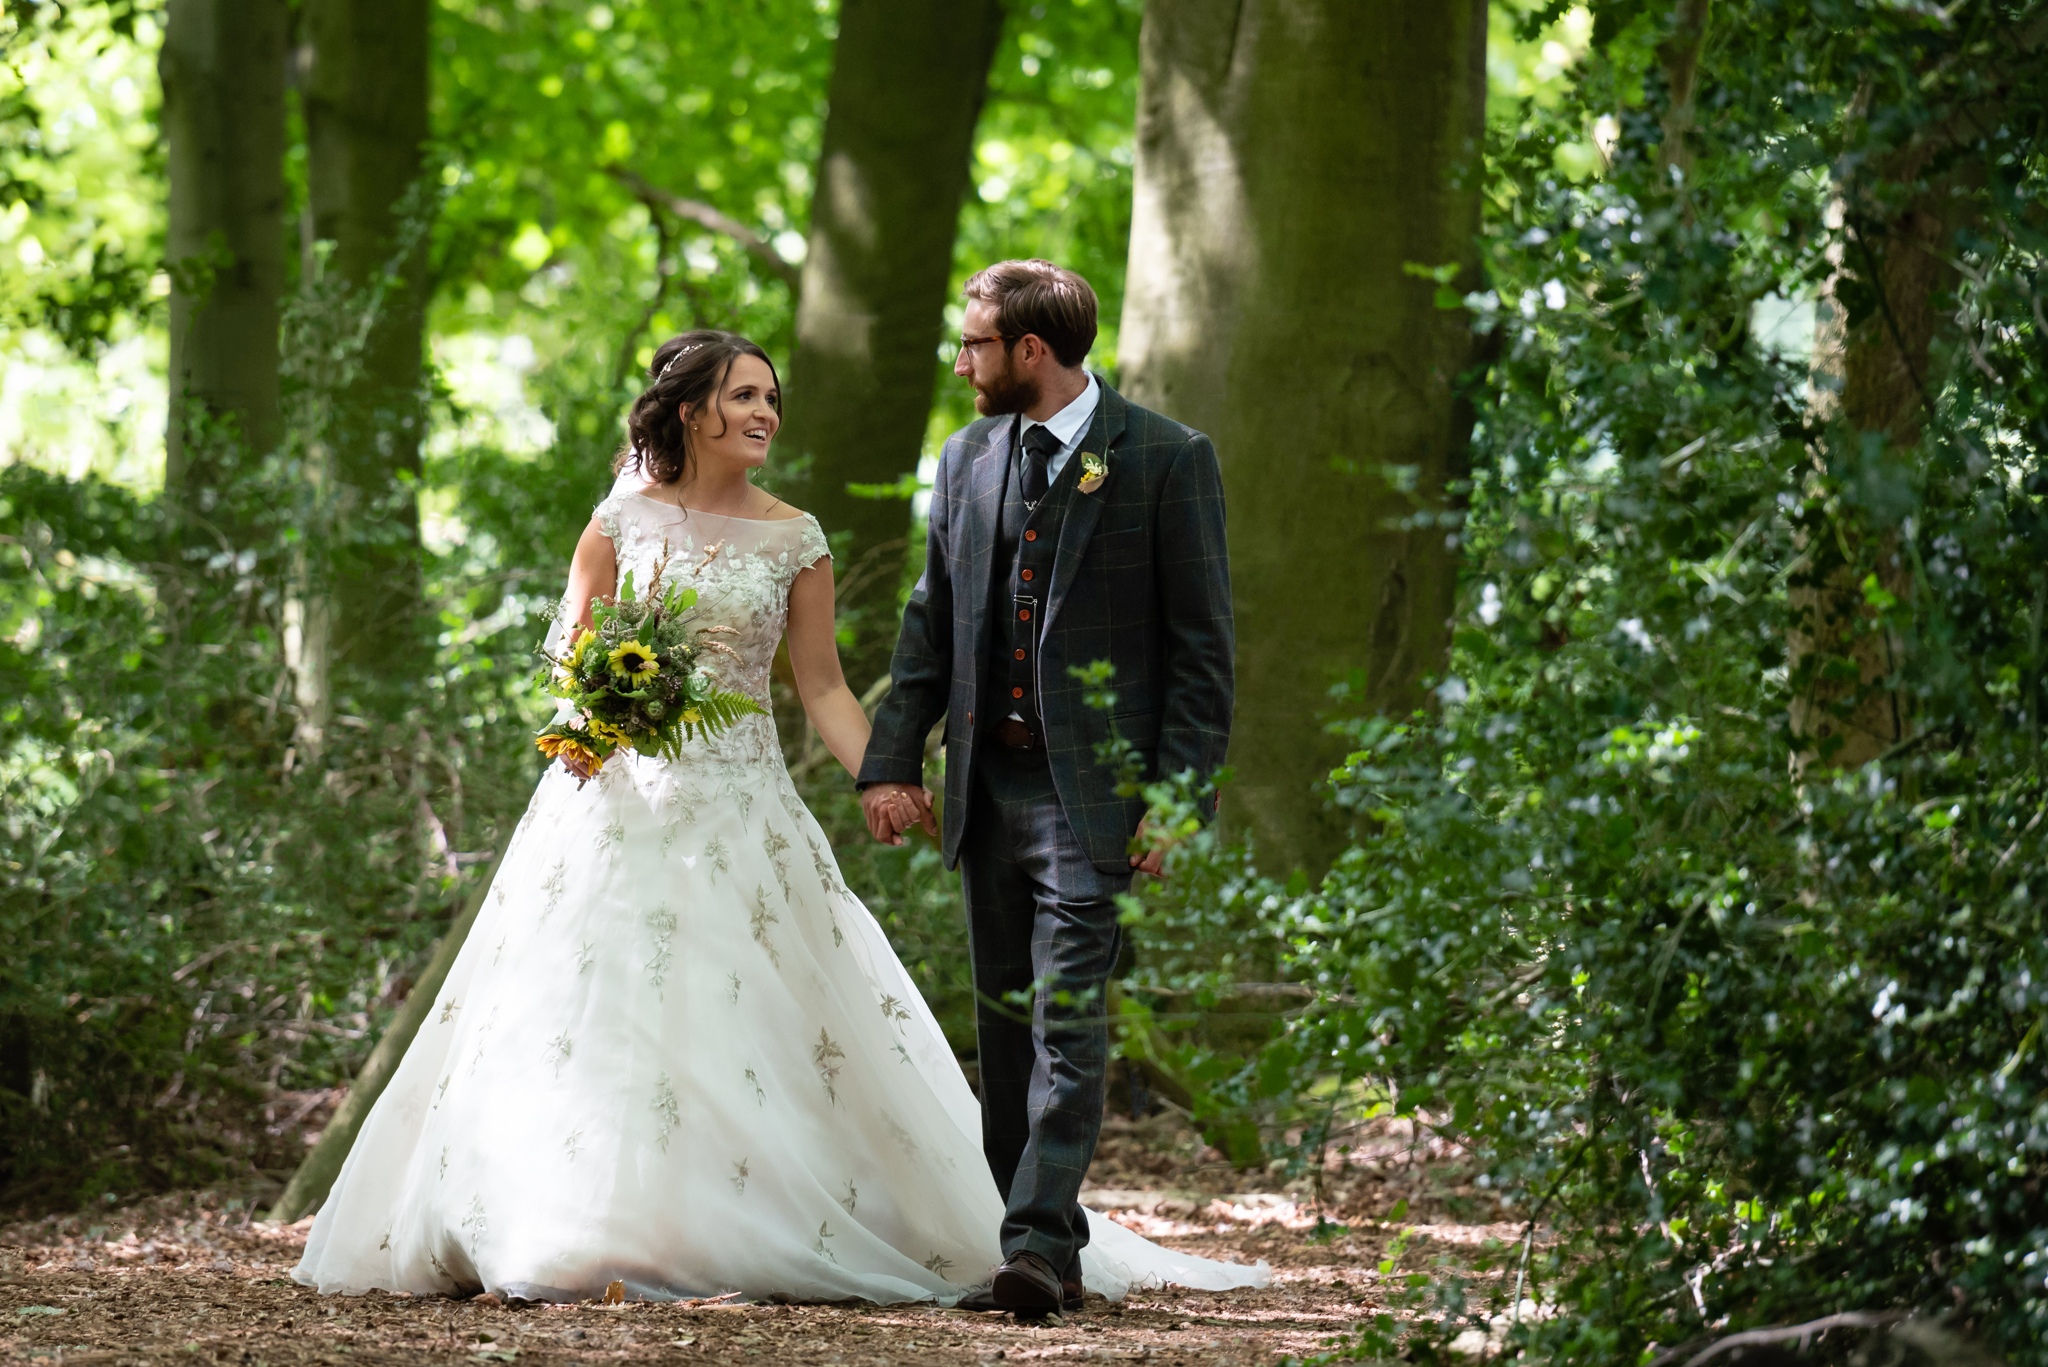 The bride and groom at their woodland wedding in Tring